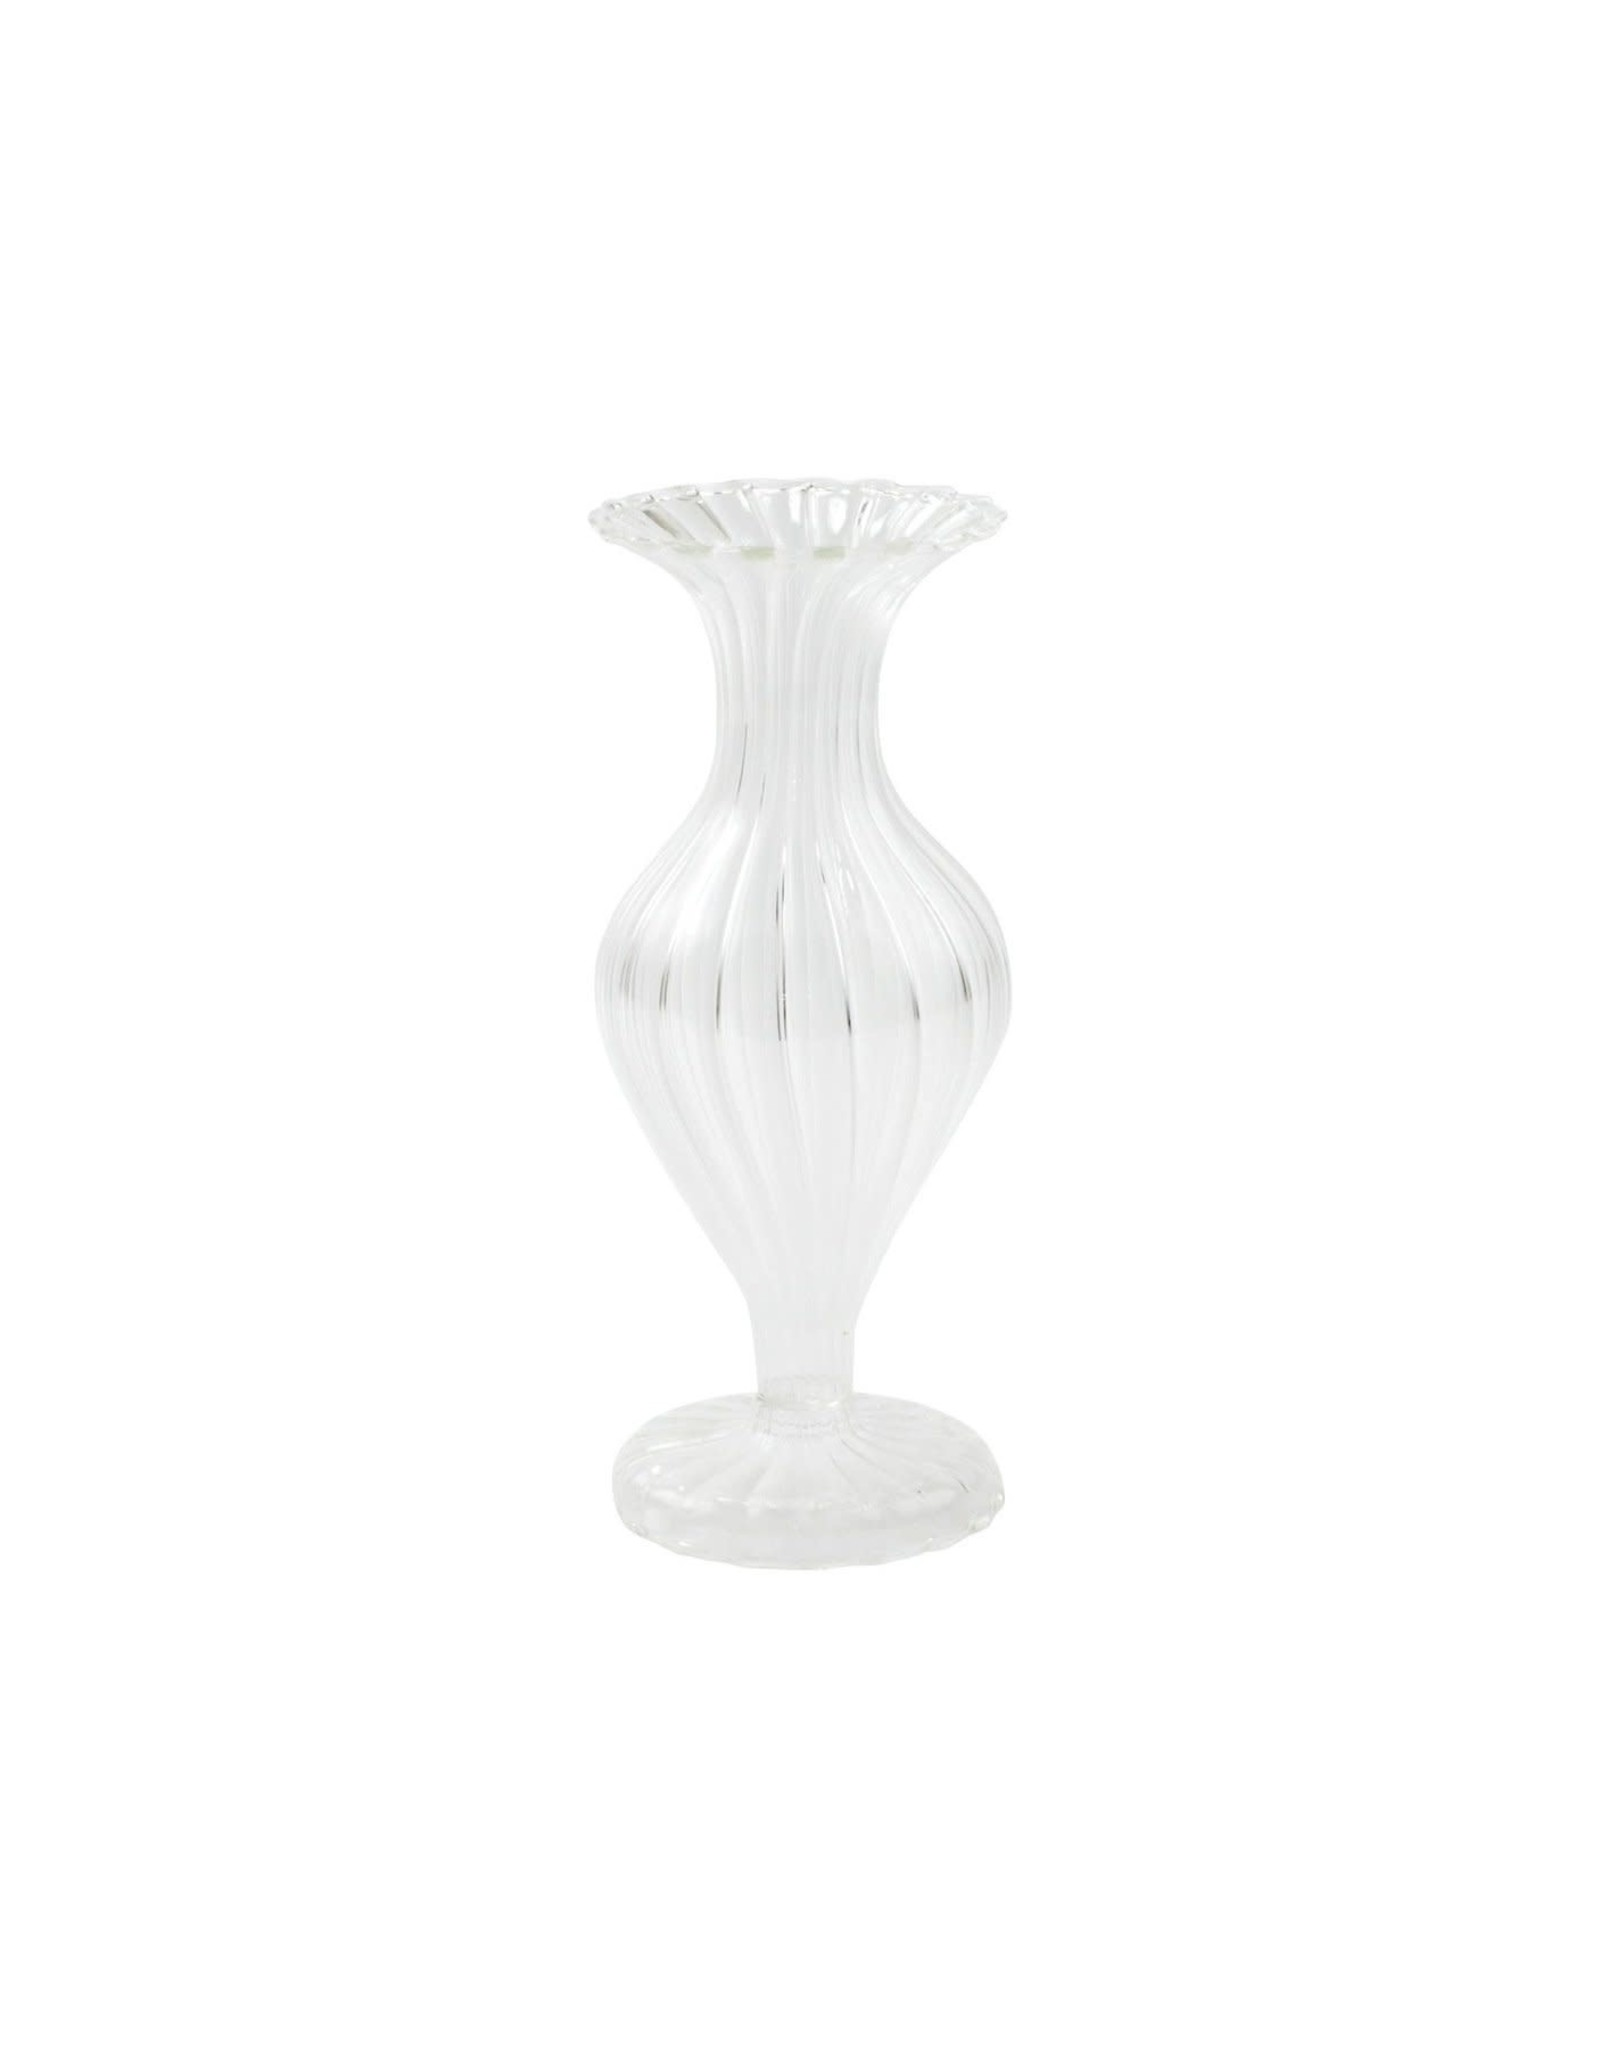 Vietri Ottico Glass Short Bud Vase/Candleholder-Set of 2